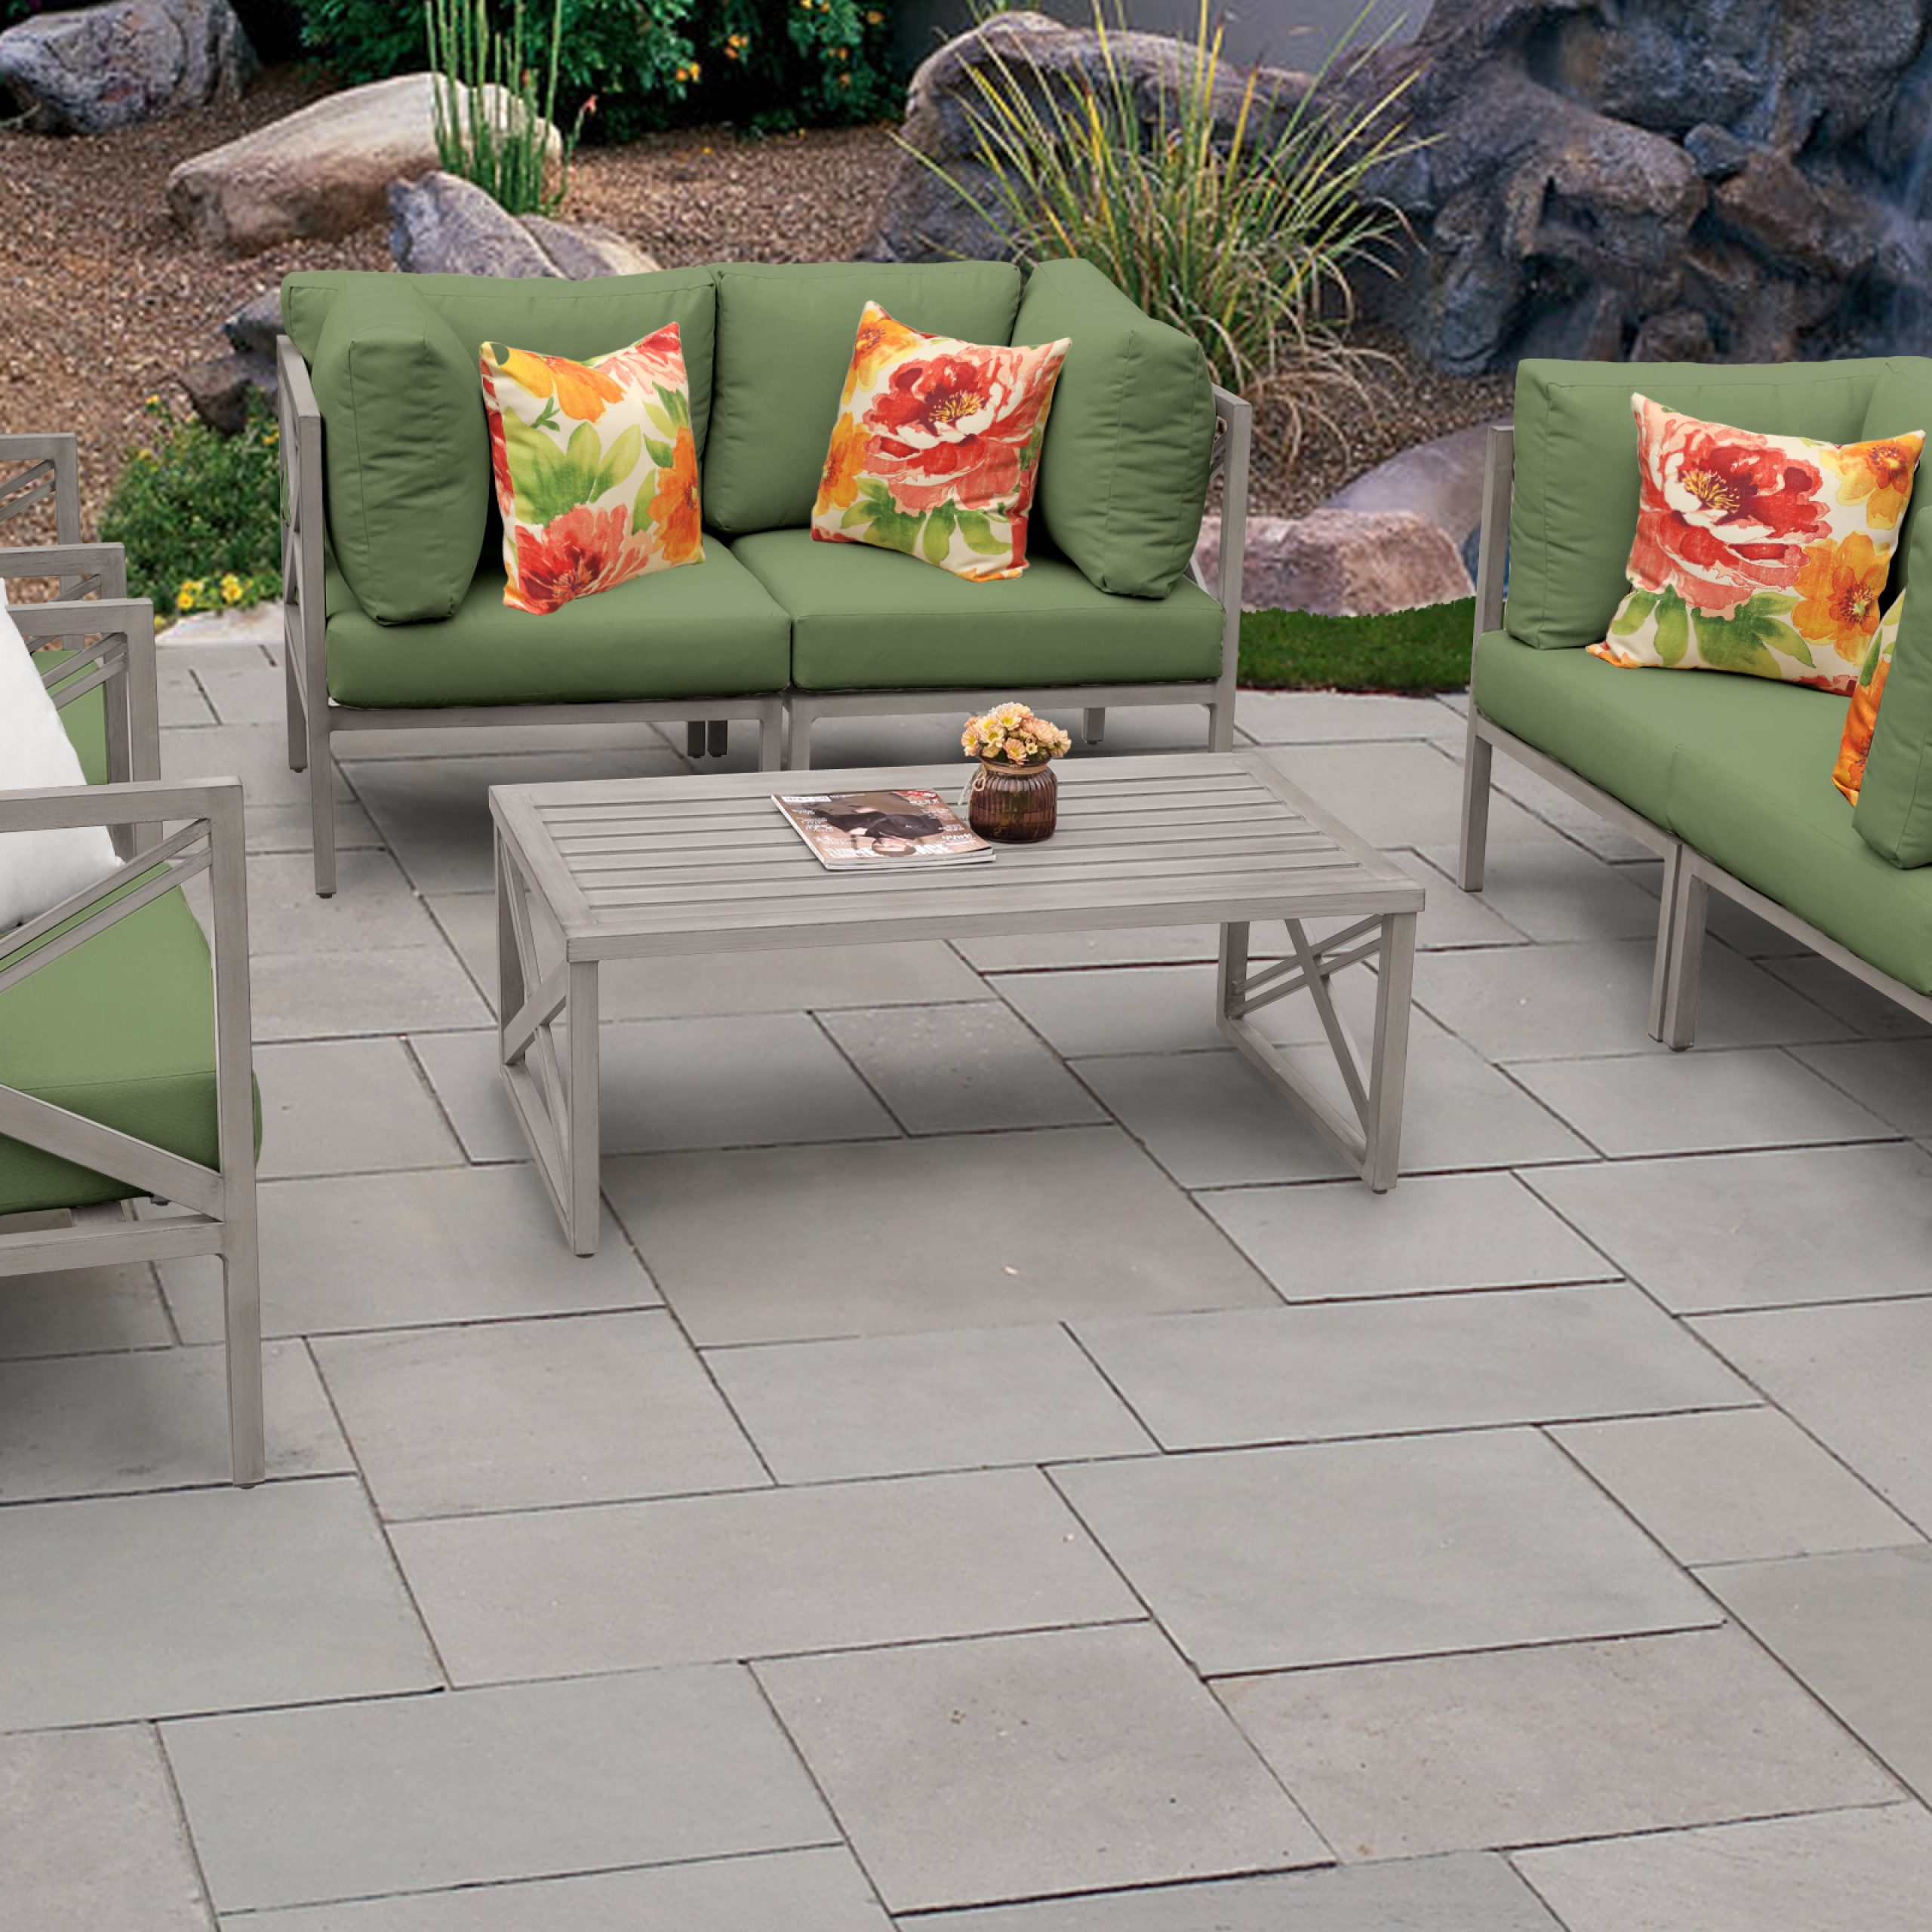 Latest Carlisle Patio Sofas With Cushions Intended For Carlisle 7 Piece Outdoor Aluminum Patio Furniture Set 07C (View 15 of 25)